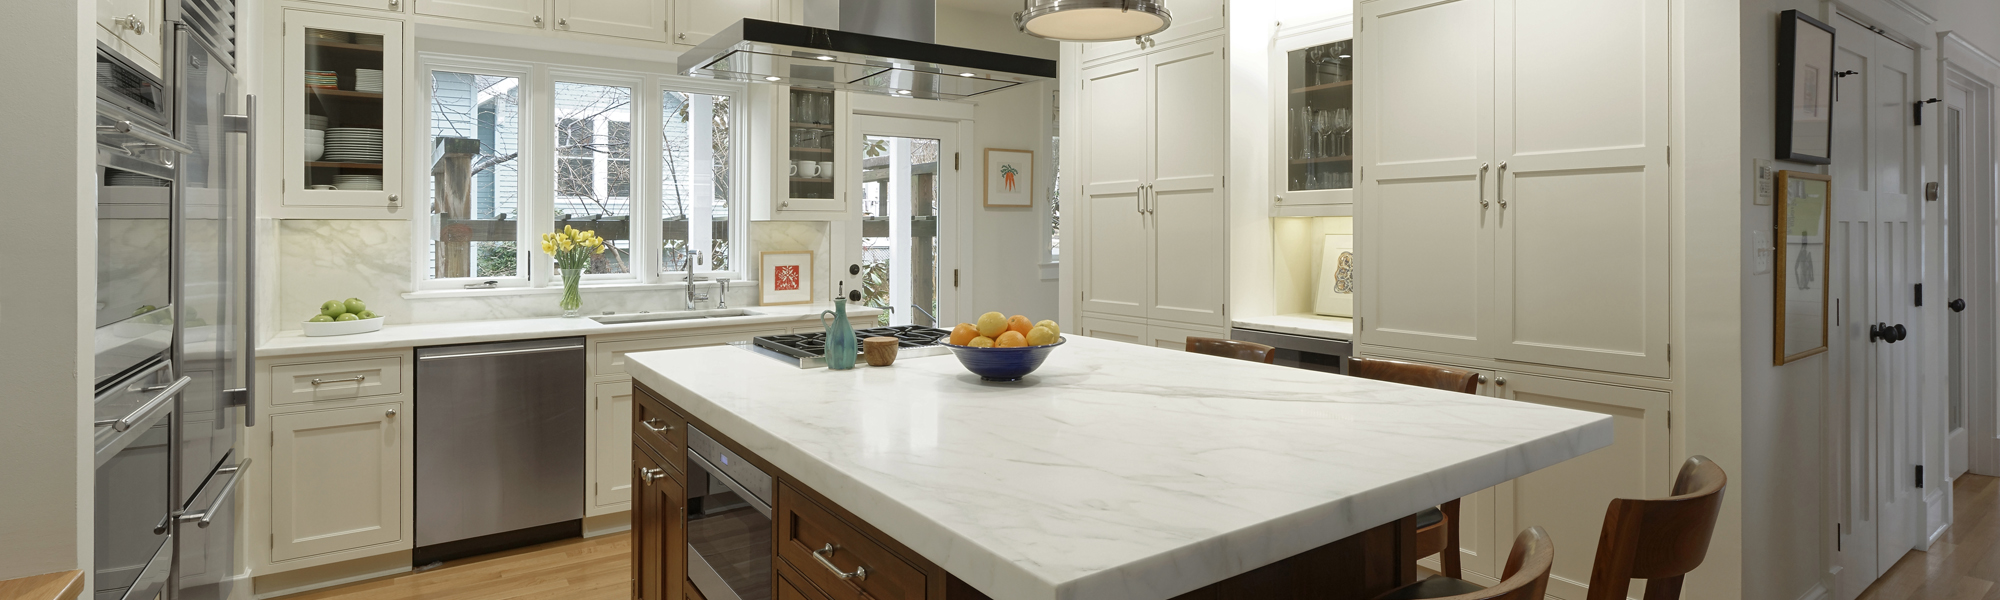 BOWA Design Build Kitchen Renovation